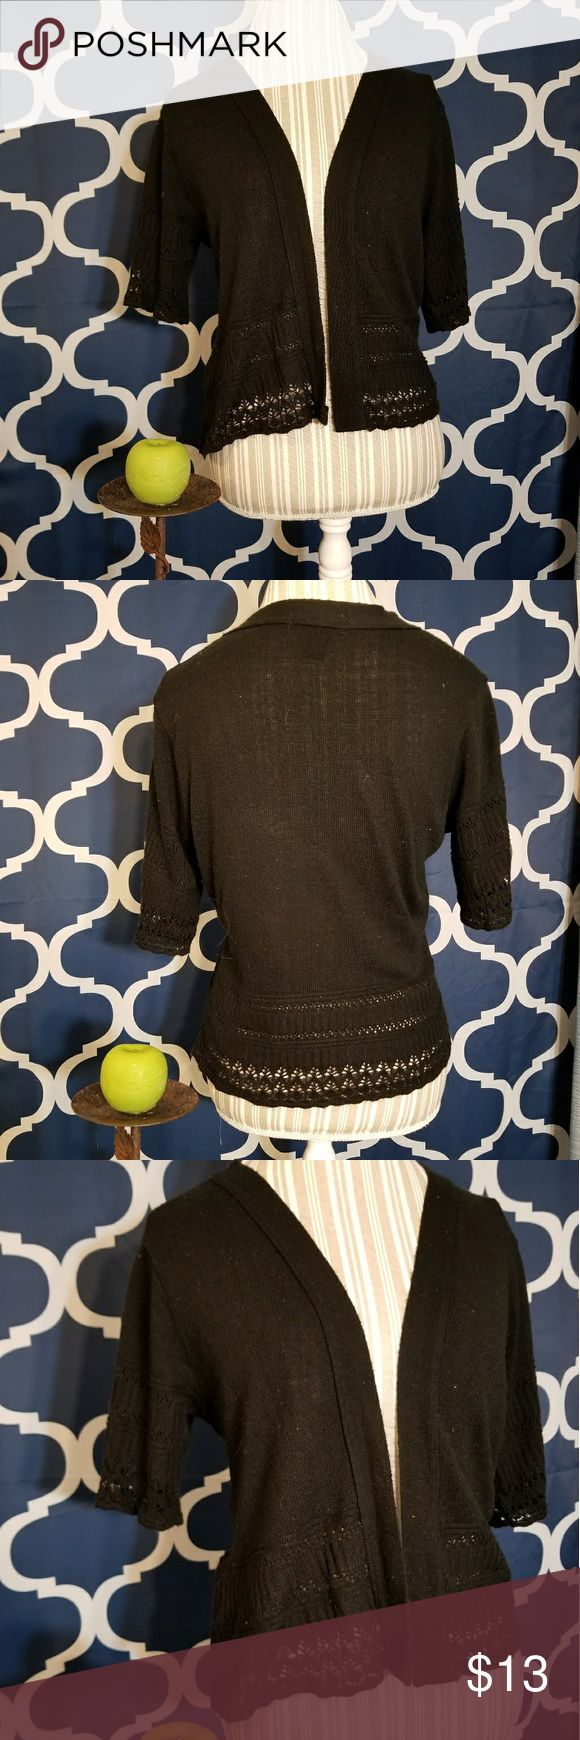 🌻🌺🌻CUTE BLACK SHRUG CARDIGAN!! CUTE BLACK SHRUG CARDIGAN!! Size large. Has crochet detail on sleeves and lower trim. Very versatile. No flaws, has some lint on it but I will clean that up for you 😁 Posh Ambassador, buy with confidence! Check out my other items to bundle and save on shipping! Reasonable offers welcome. I ship same or next day!    Inventory #RA47 Sweaters